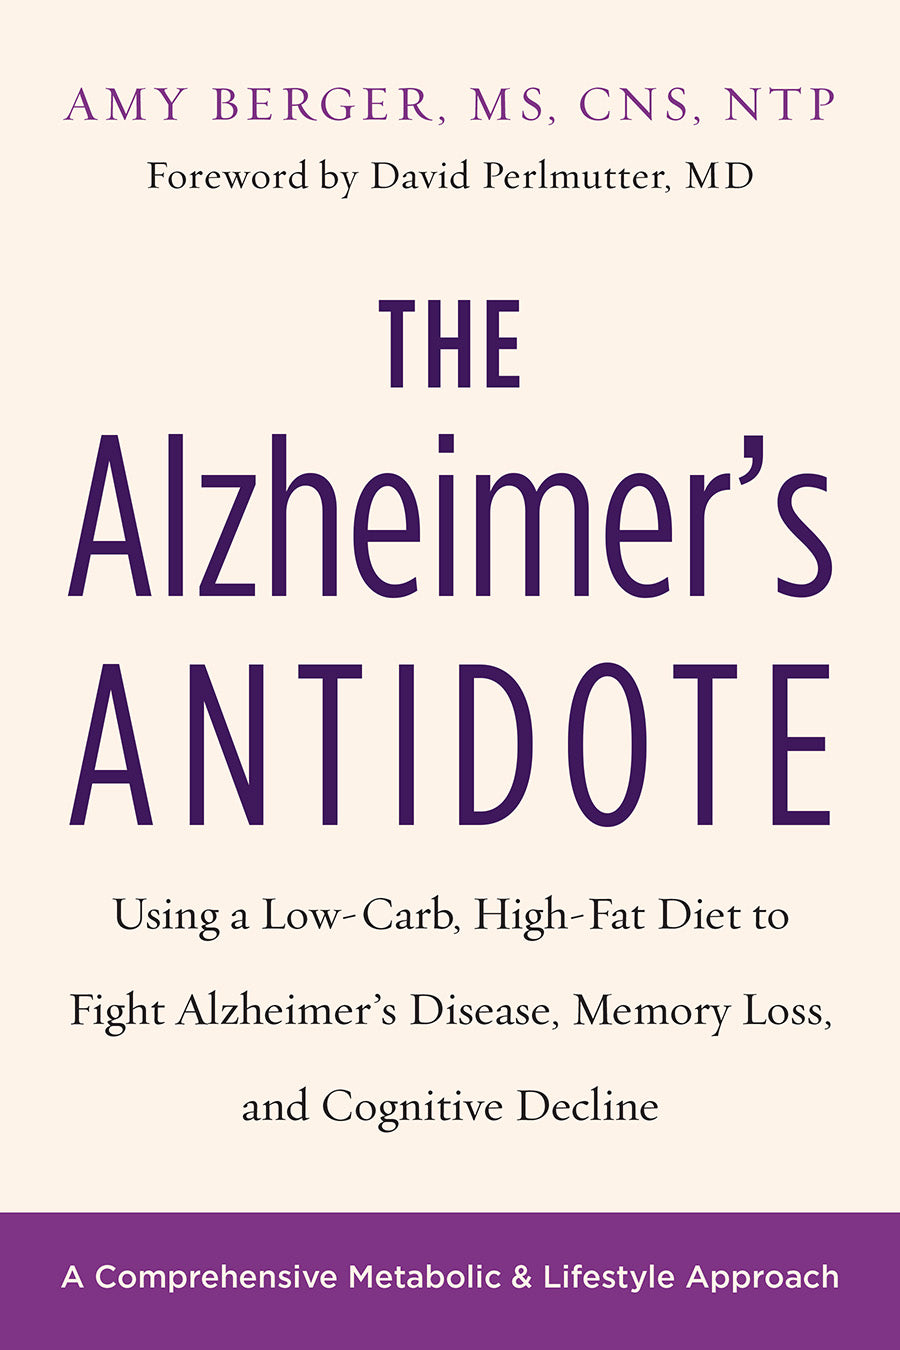 The Alzheimer's Antidote